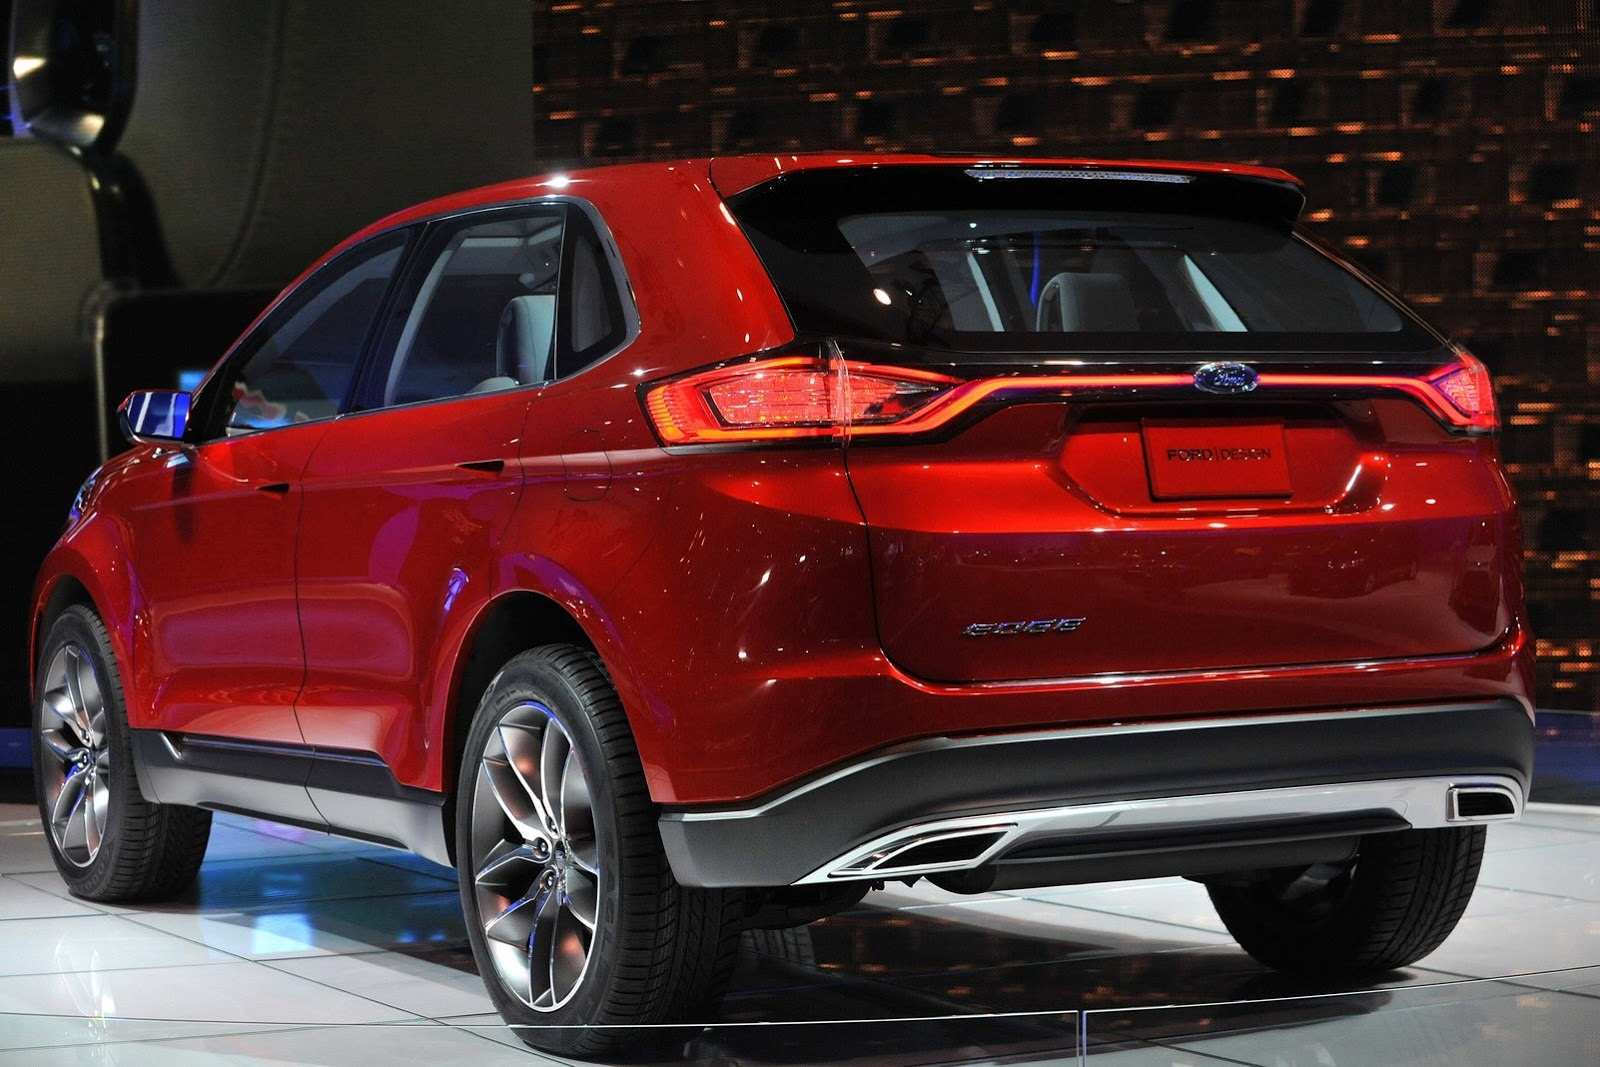 77 A Ford Edge New Design Price And Release Date